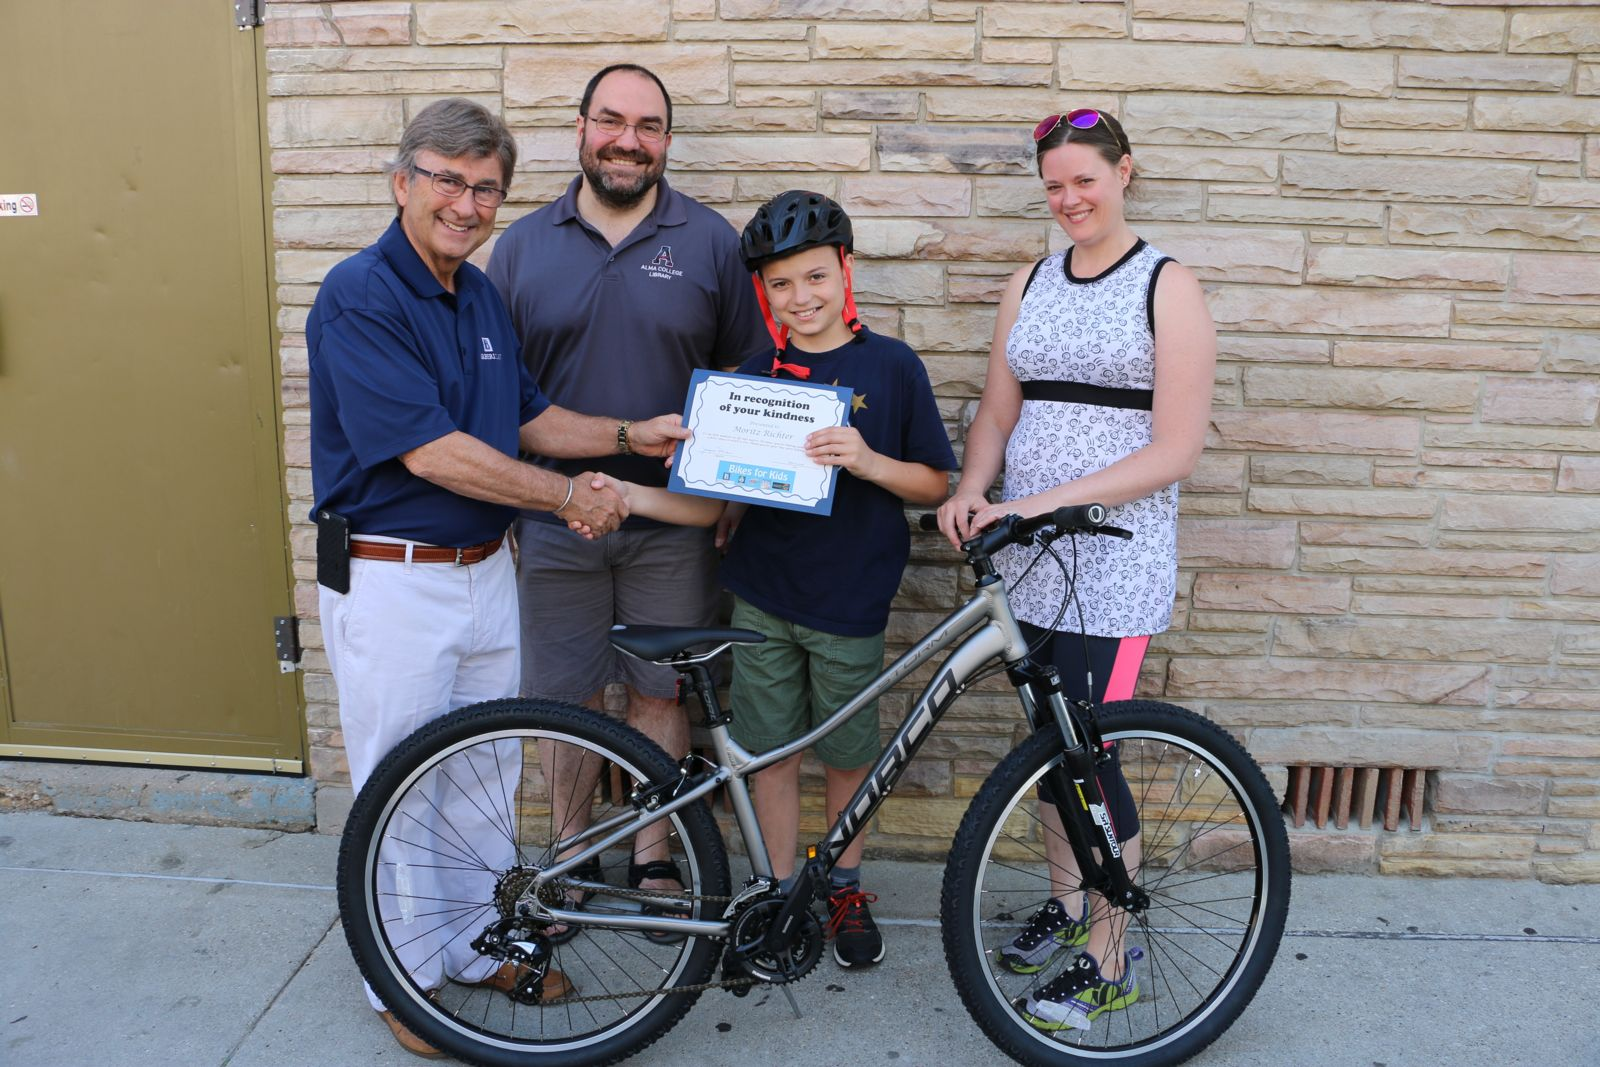 Joe presents Moritz Richter with his Bikes for Kids certificate. Marcus, Moritz's father, and Allison Quast-Lents, owner of Motorless Motion, helped Moritz pick out his mountain bike. Bikes for Kids 2016